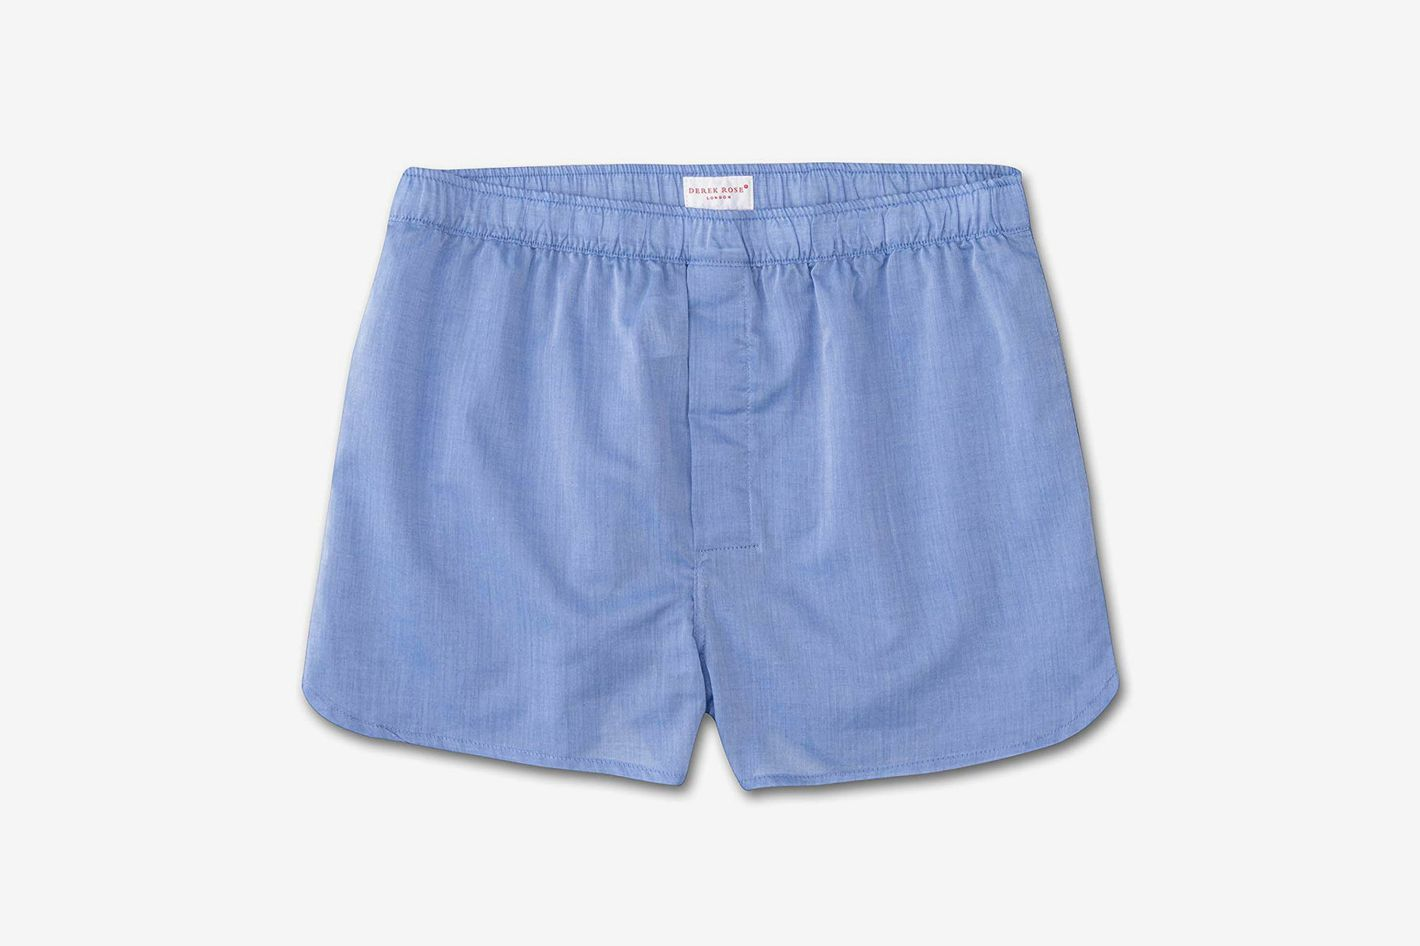 Derek Rose Men's Modern Fit Cotton Boxer Shorts